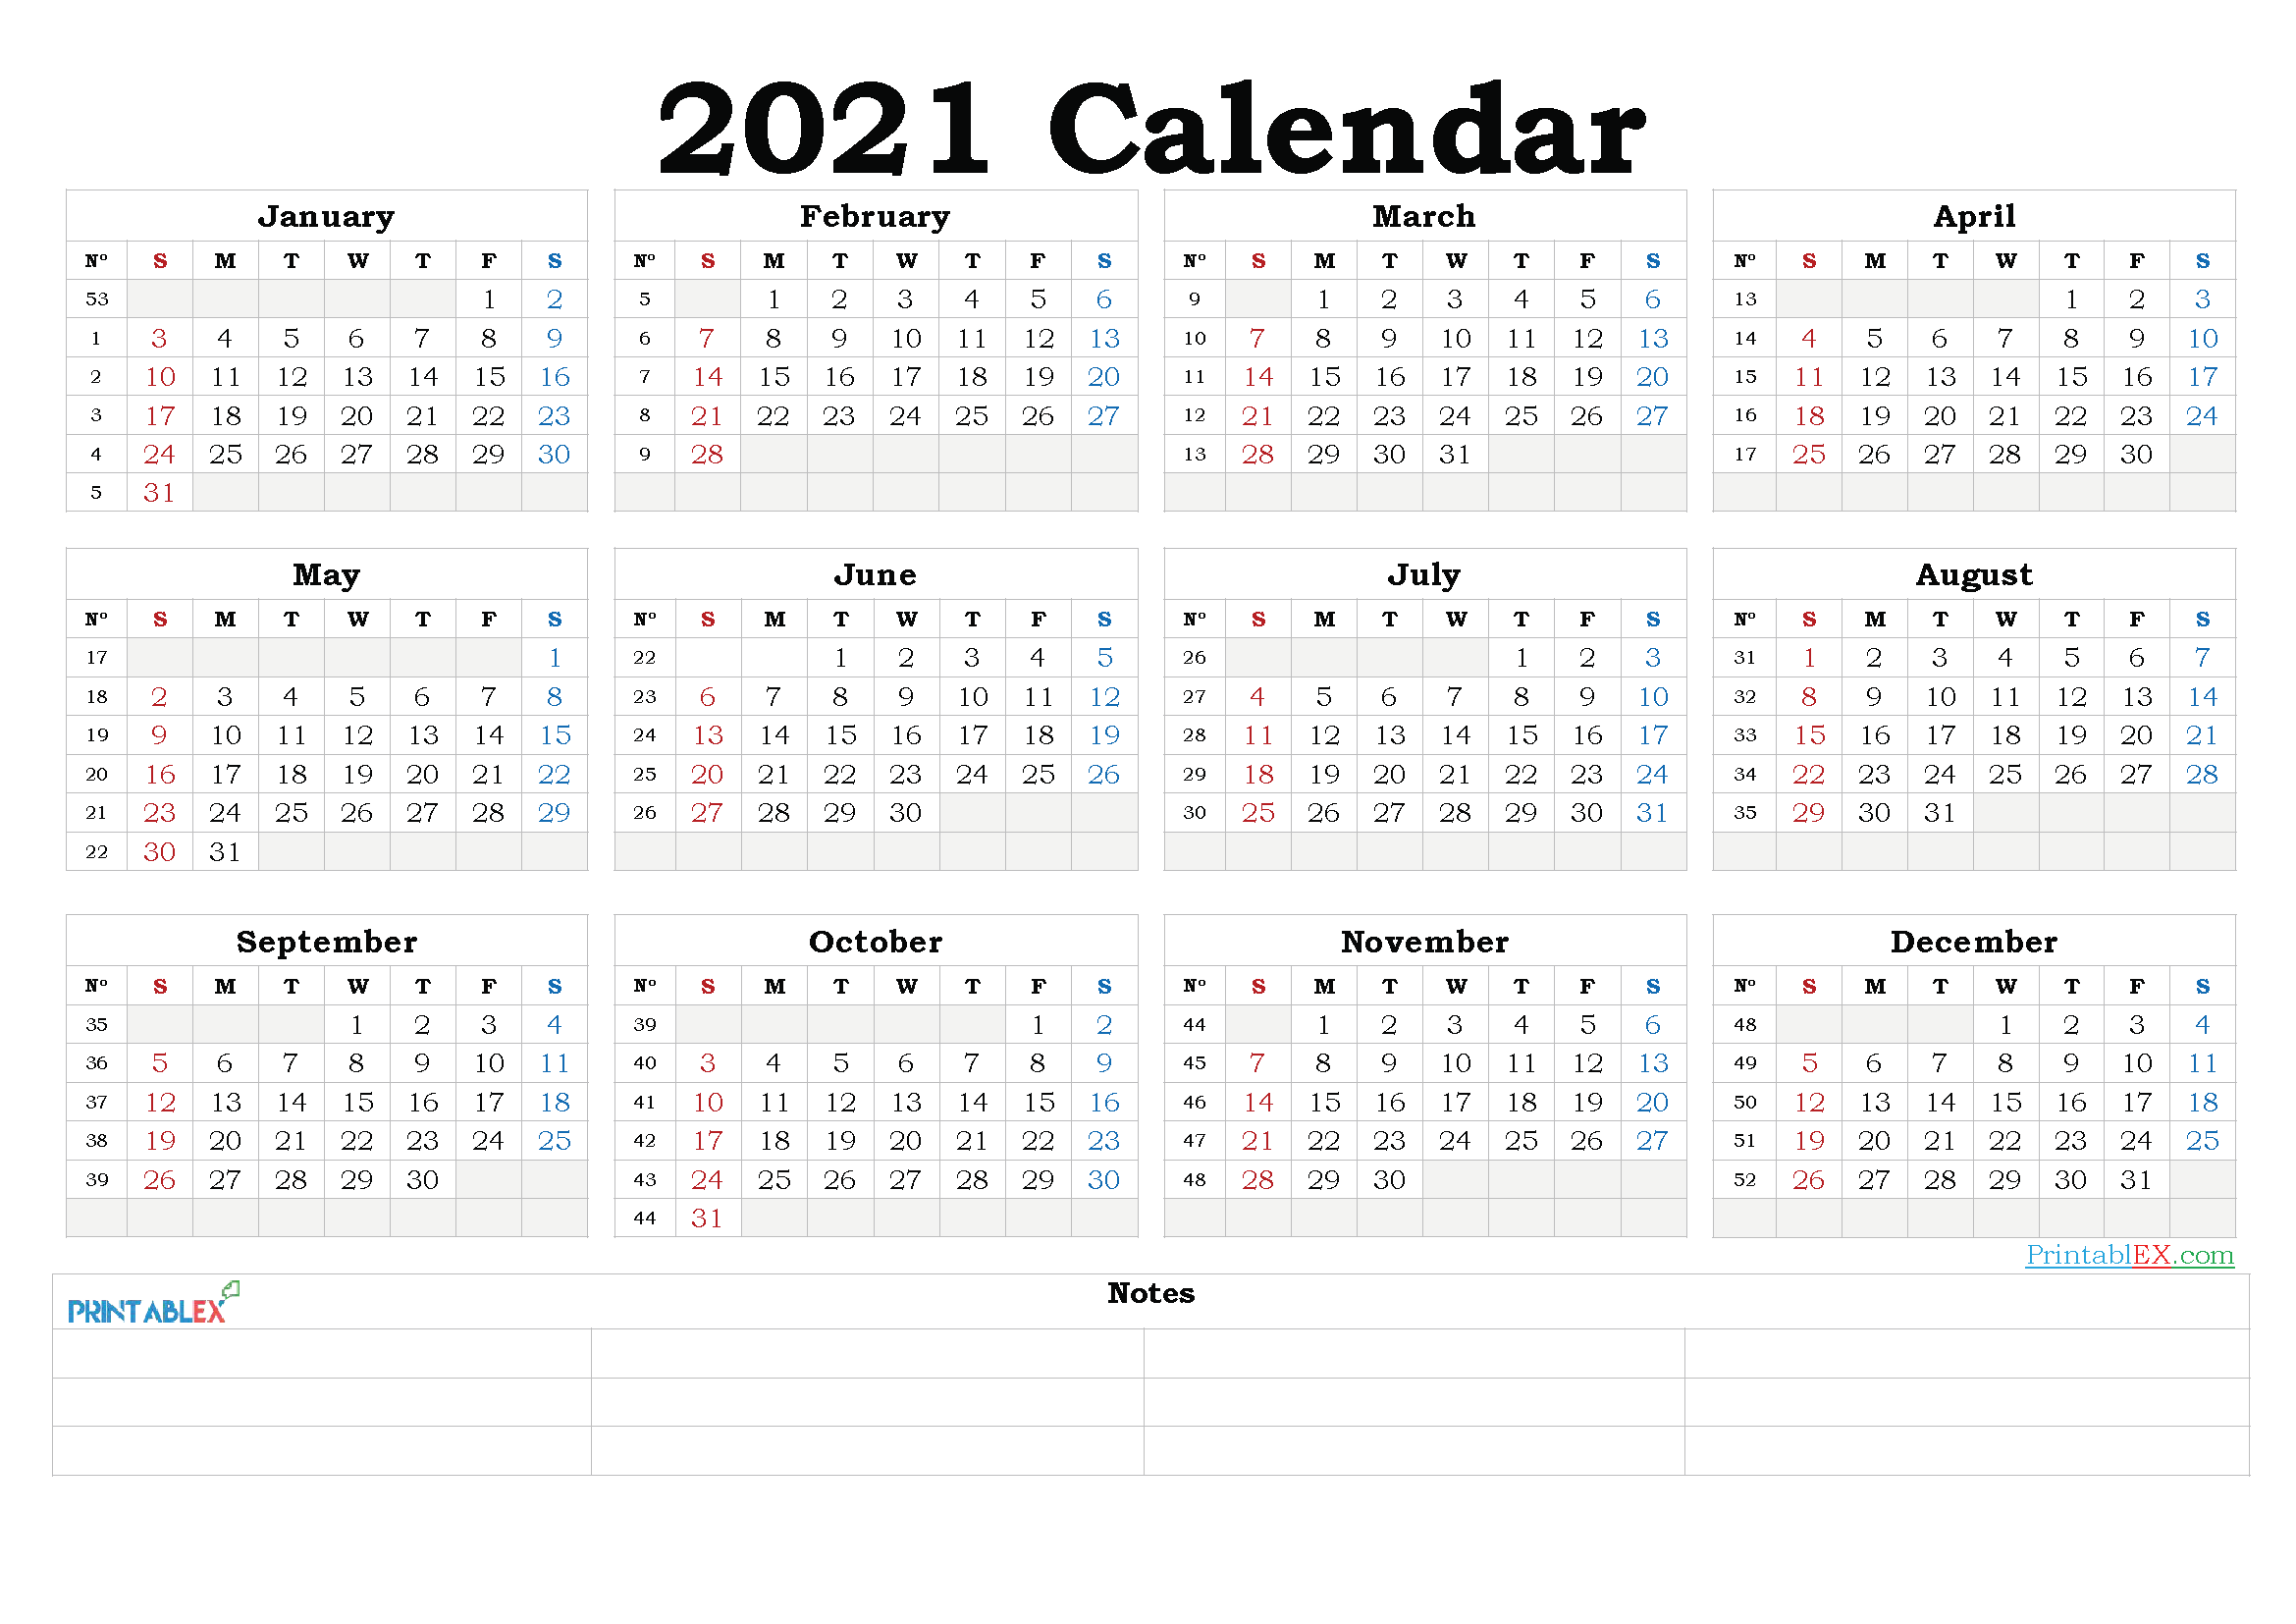 2021 Yearly Calendar Template Word - 21ytw185 - Free 2020 ...